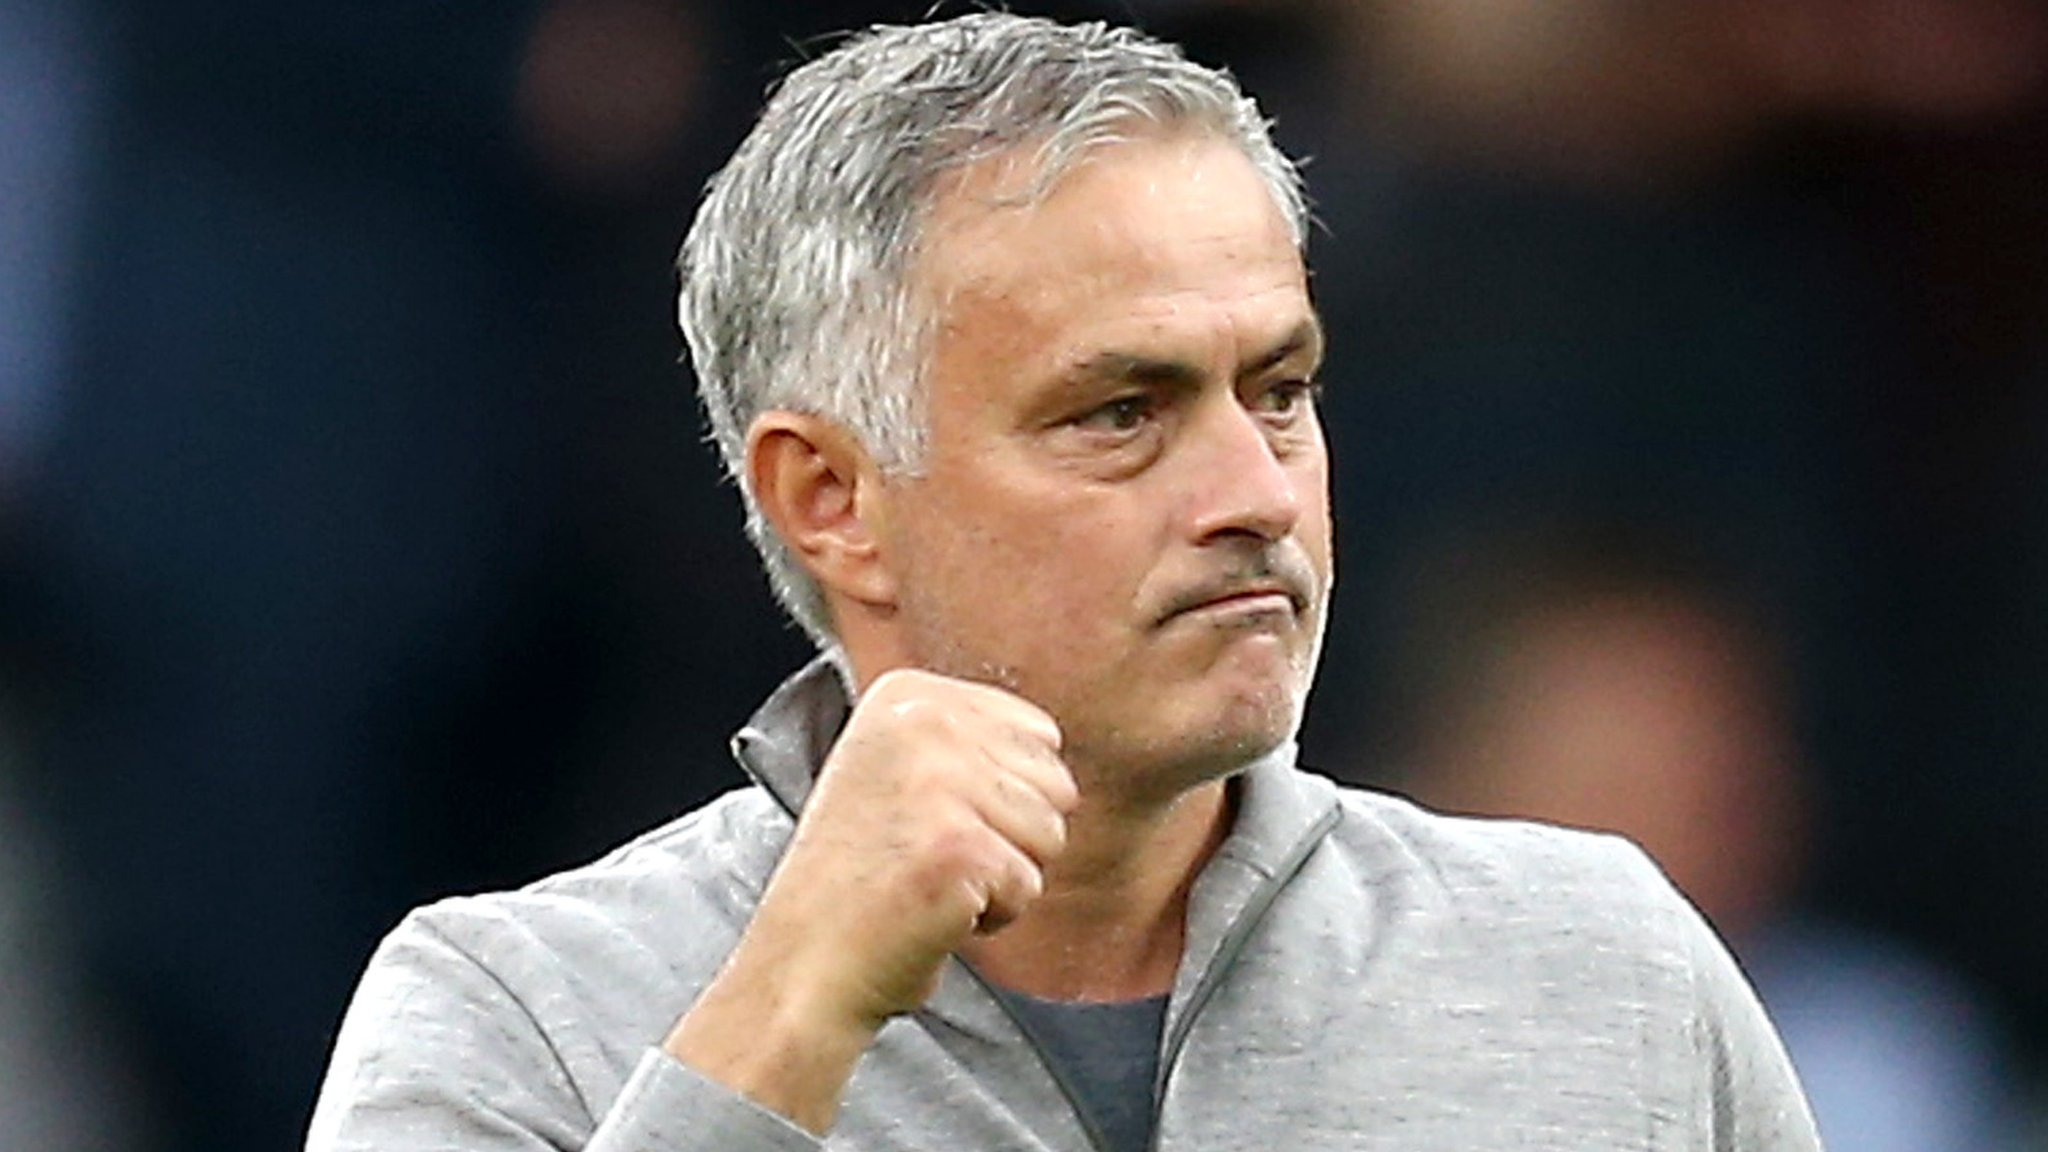 Jose Mourinho: Manchester United manager wants to 'see out' contract at club